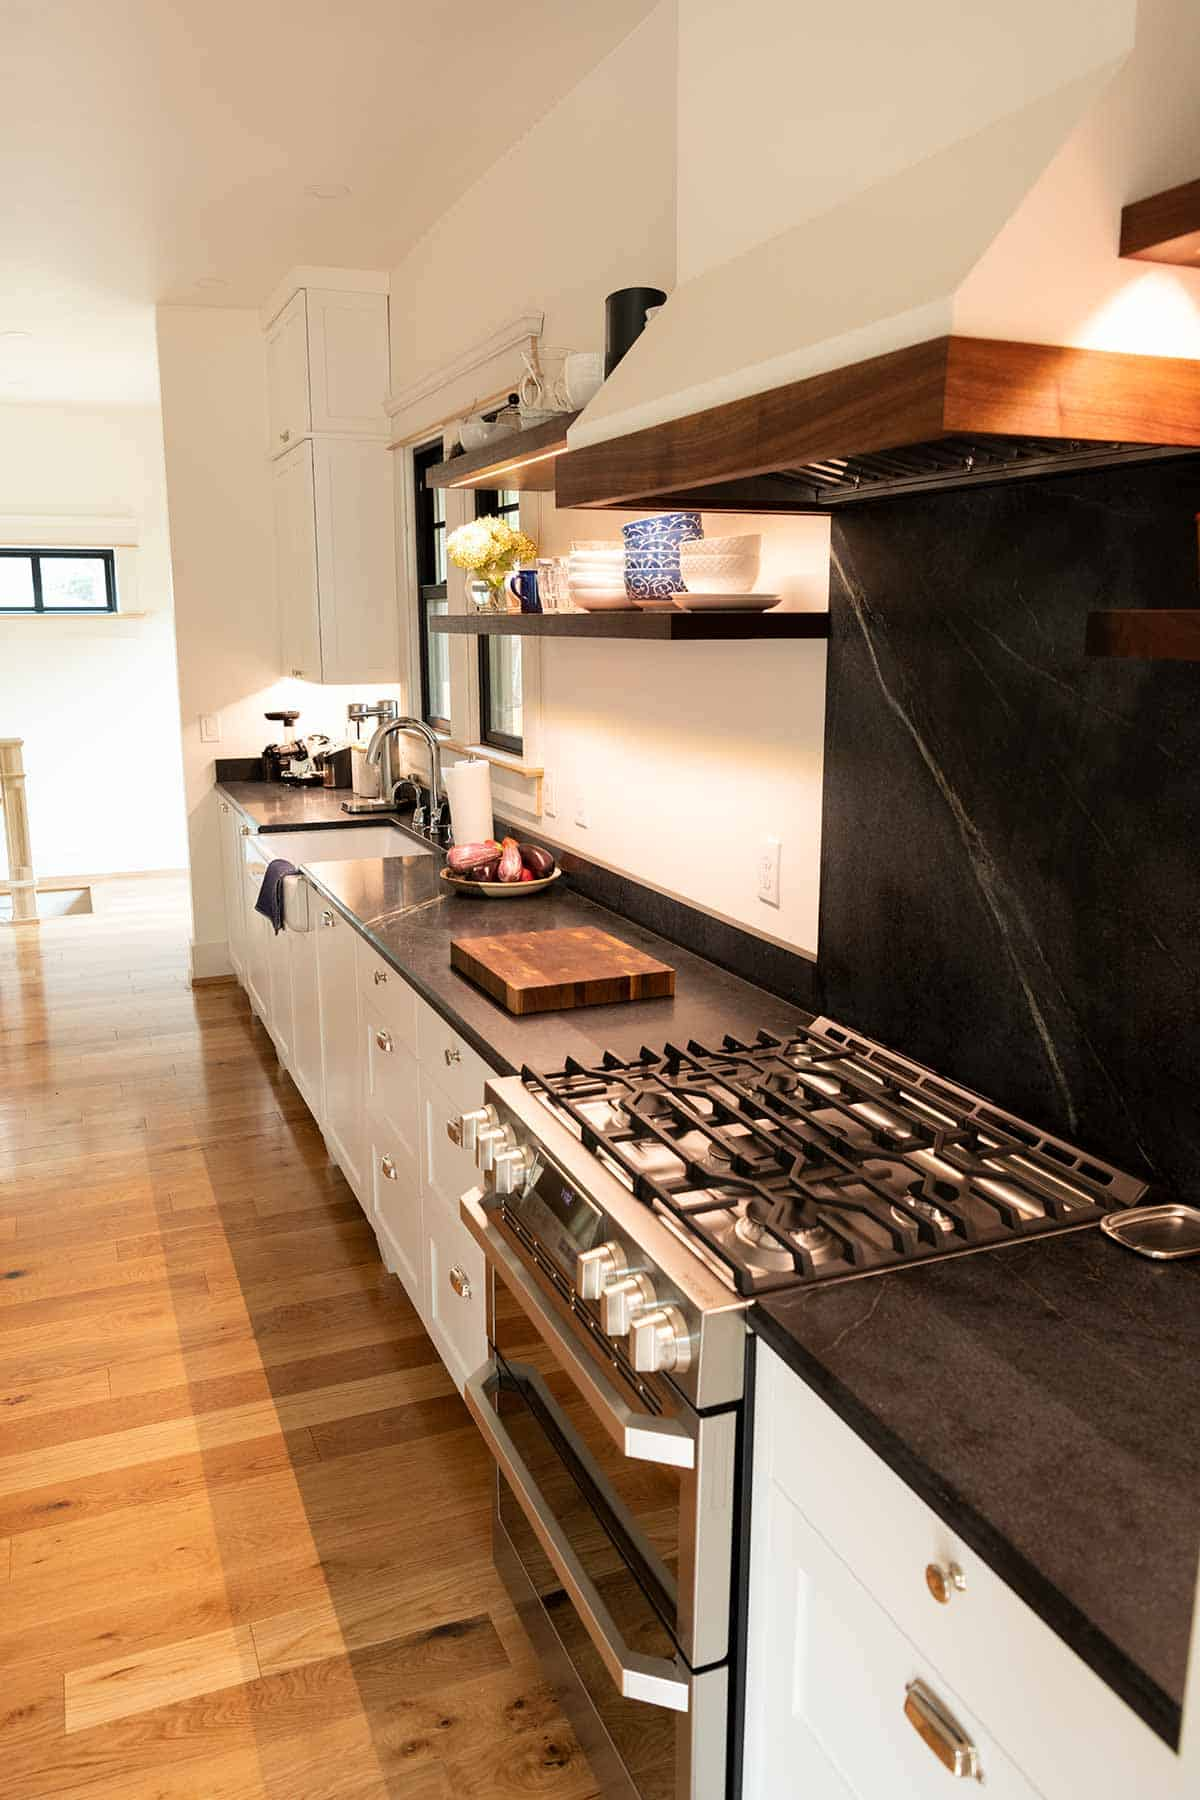 Remodeled kitchen with soapstone countertops